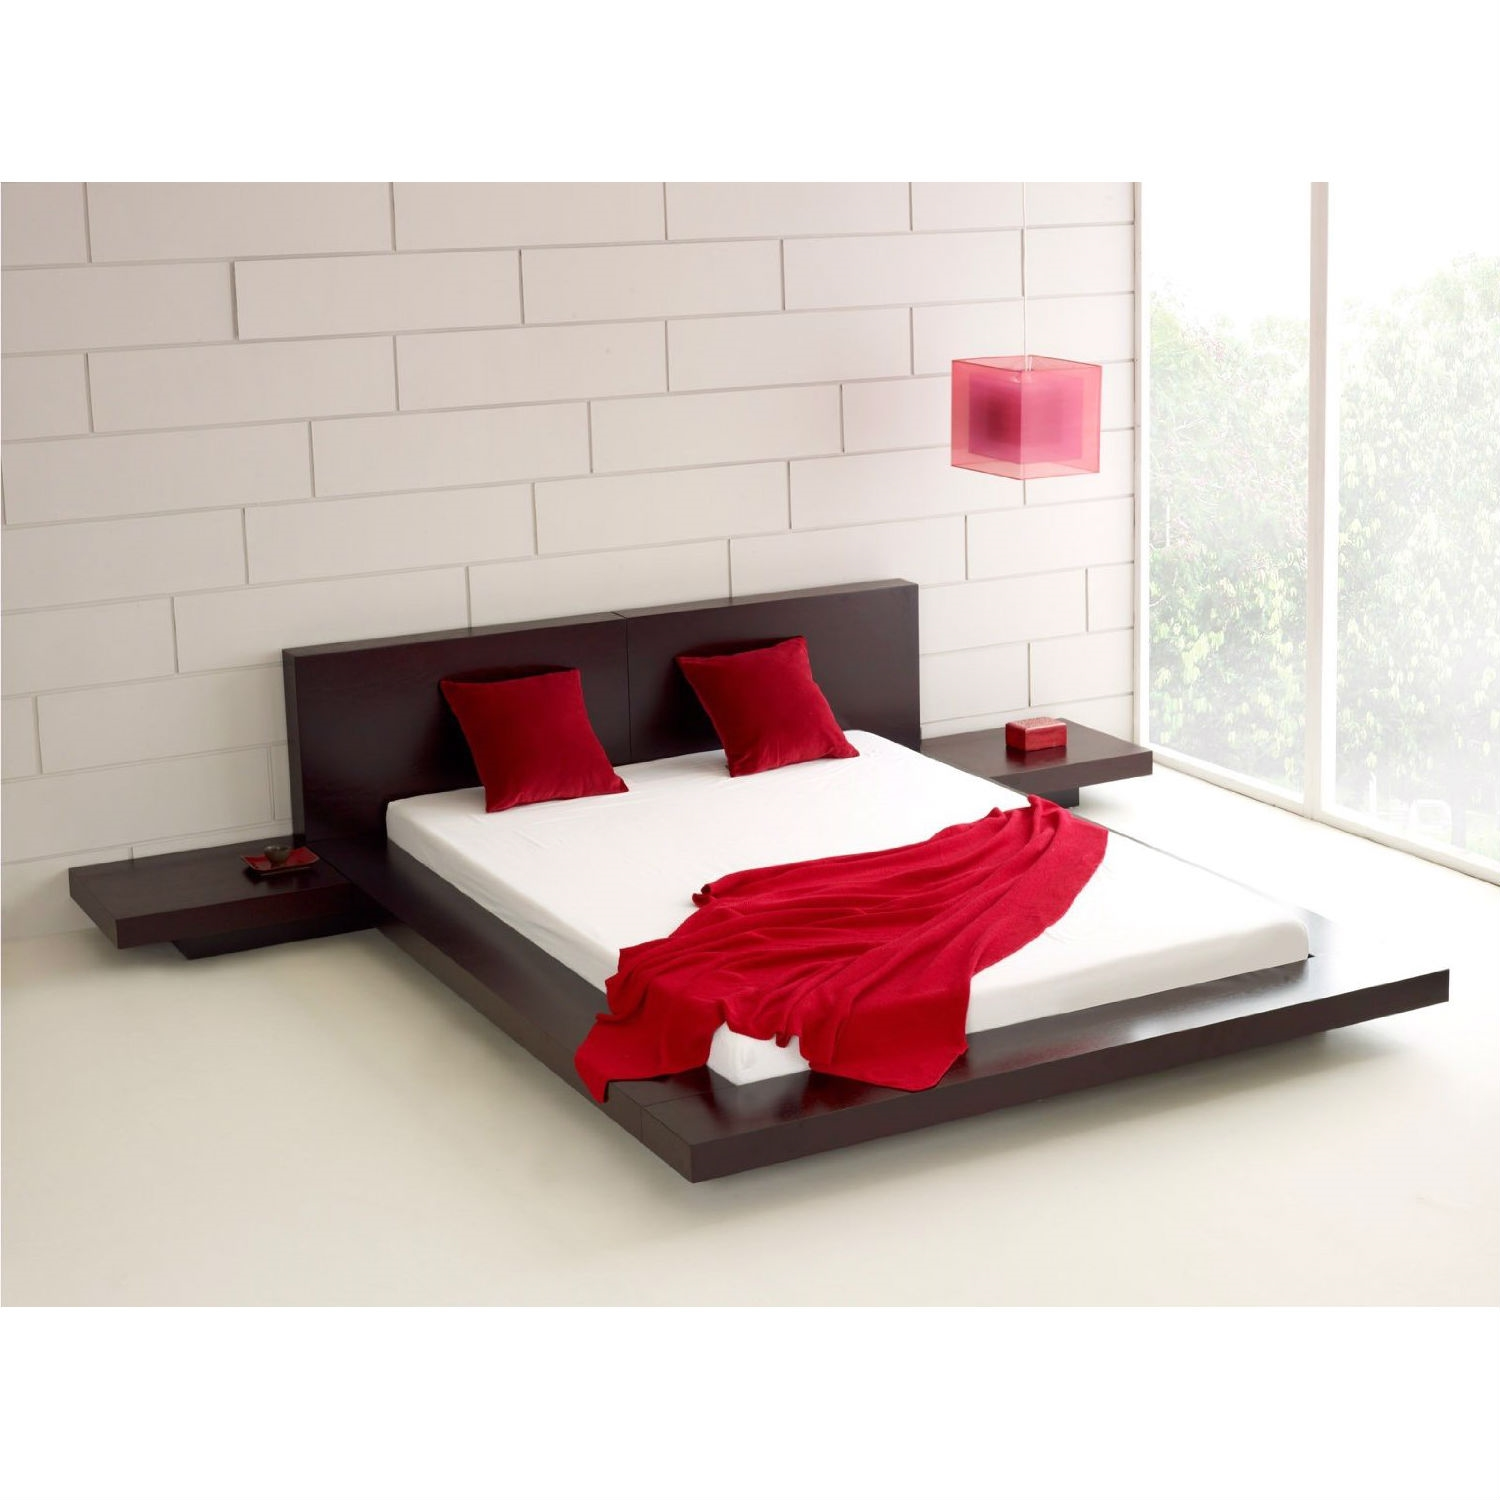 King Modern Japanese Style Platform Bed with Headboard and 2